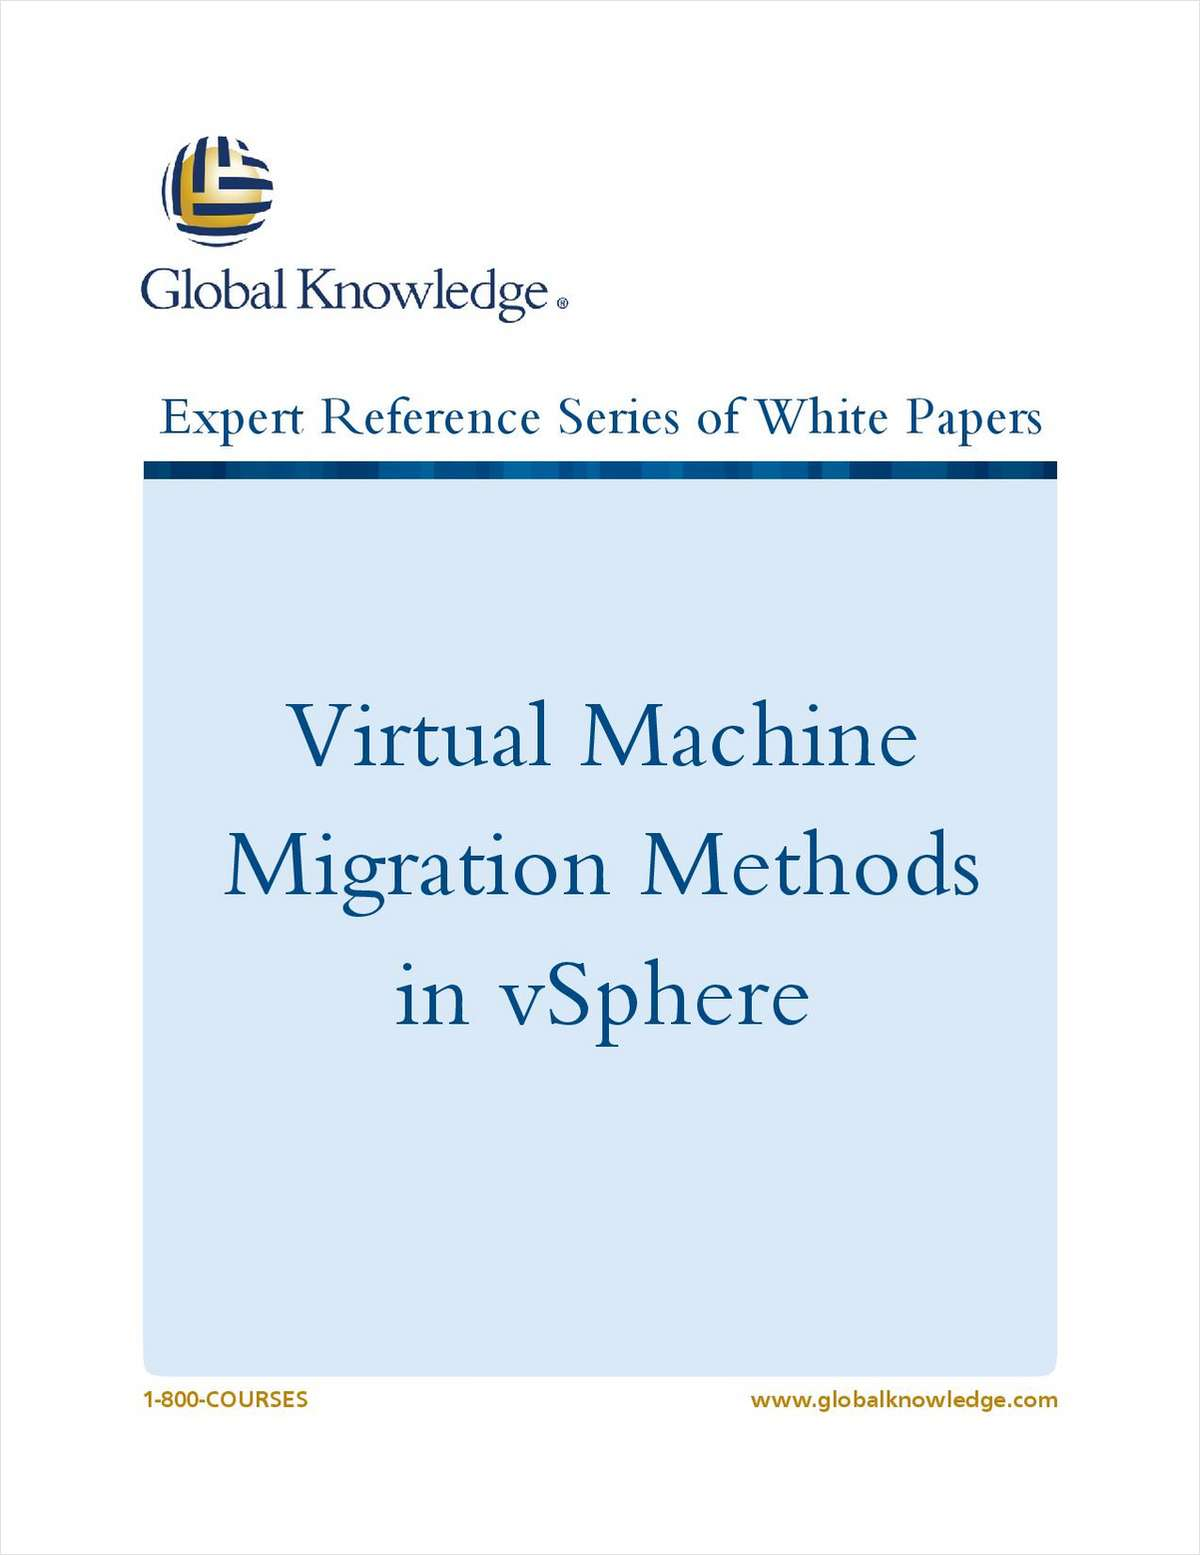 Virtual Machine Migration Methods in vSphere